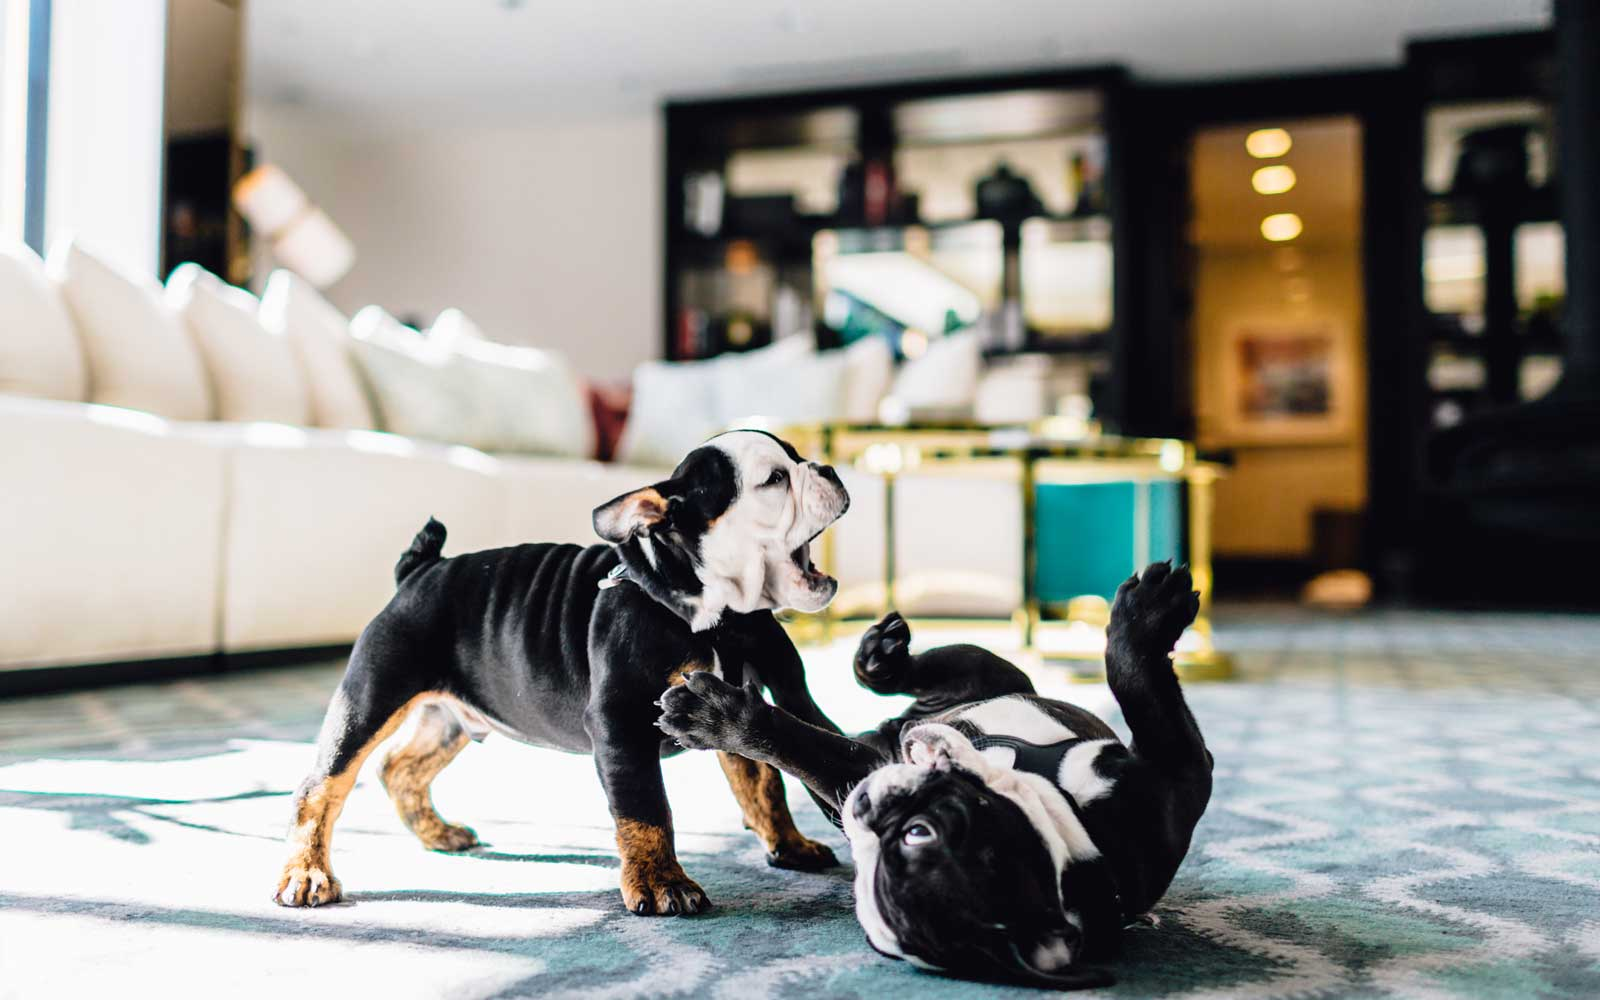 Meet Winston and Churchill, the Adorable Mascots of This Los Angeles Hotel